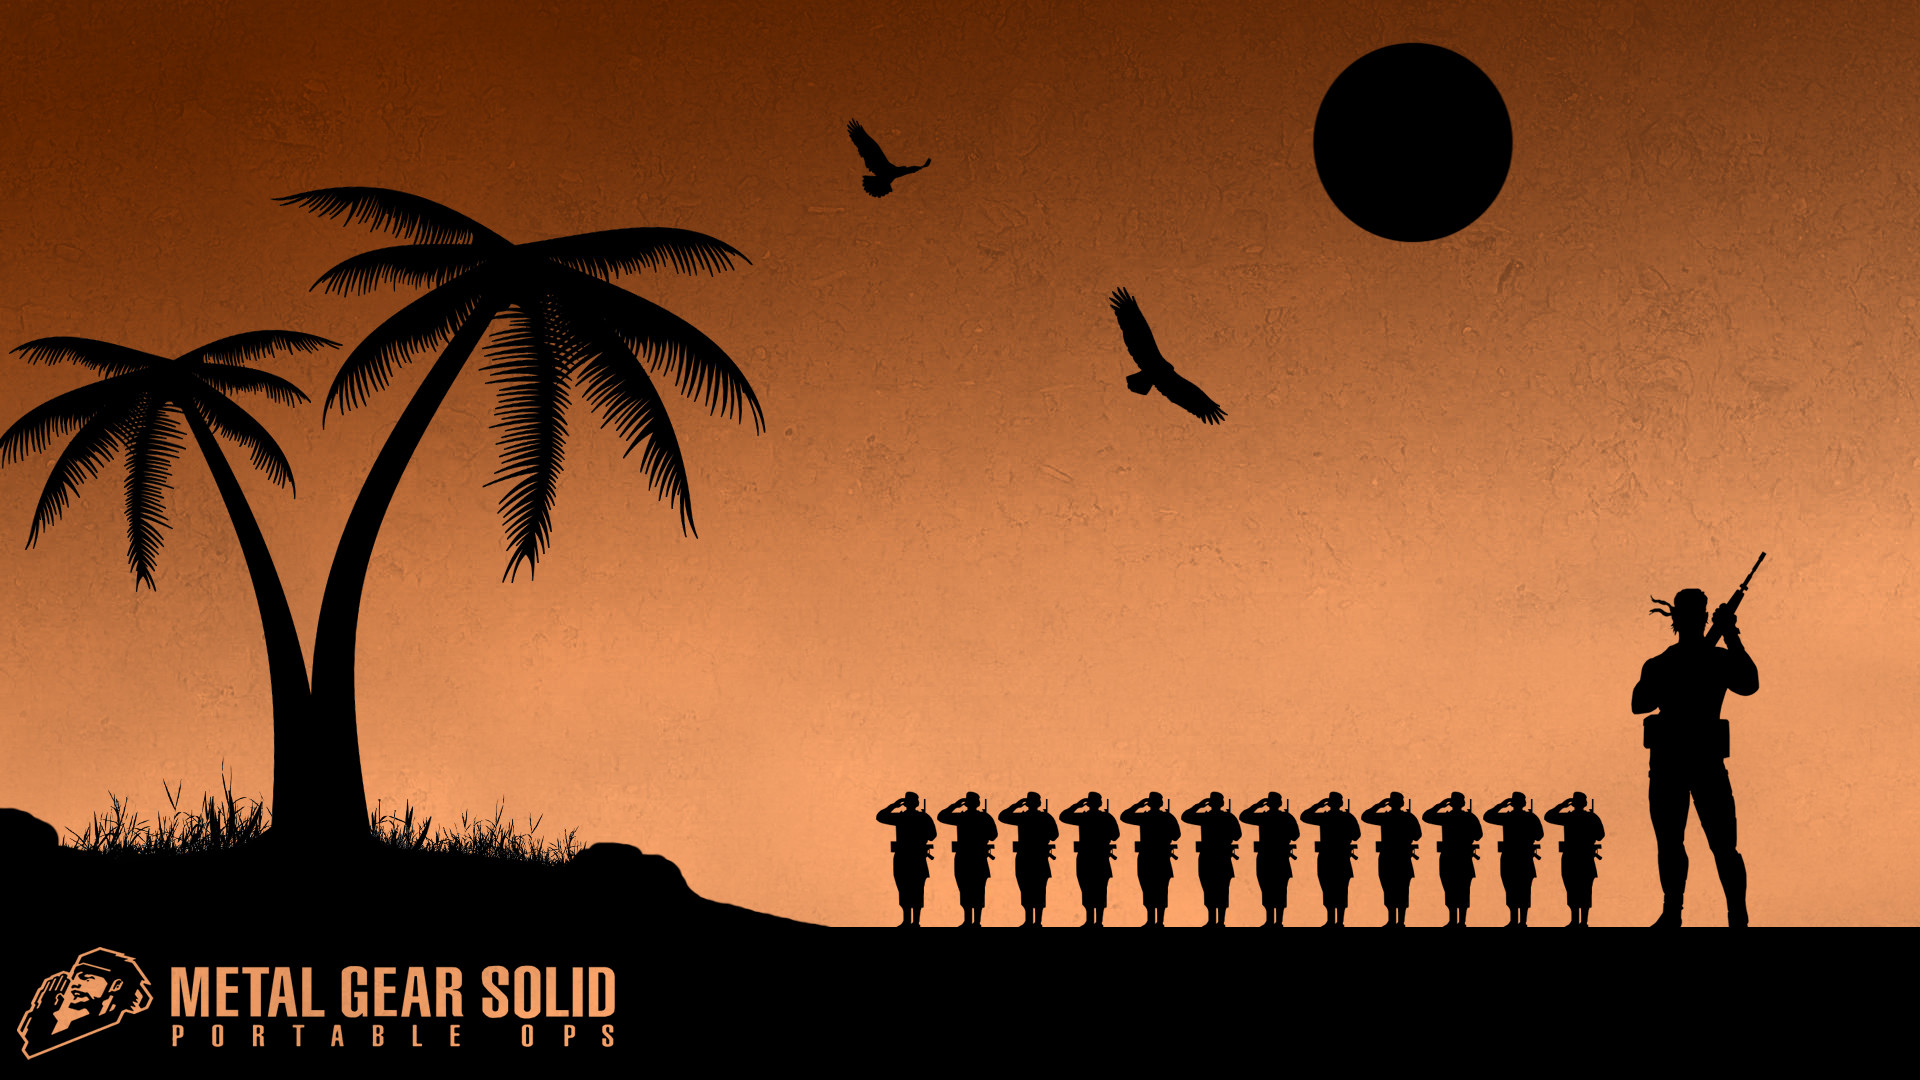 1920x1080 4 Metal Gear Solid: Portable Ops HD Wallpapers | Backgrounds - Wallpaper  Abyss